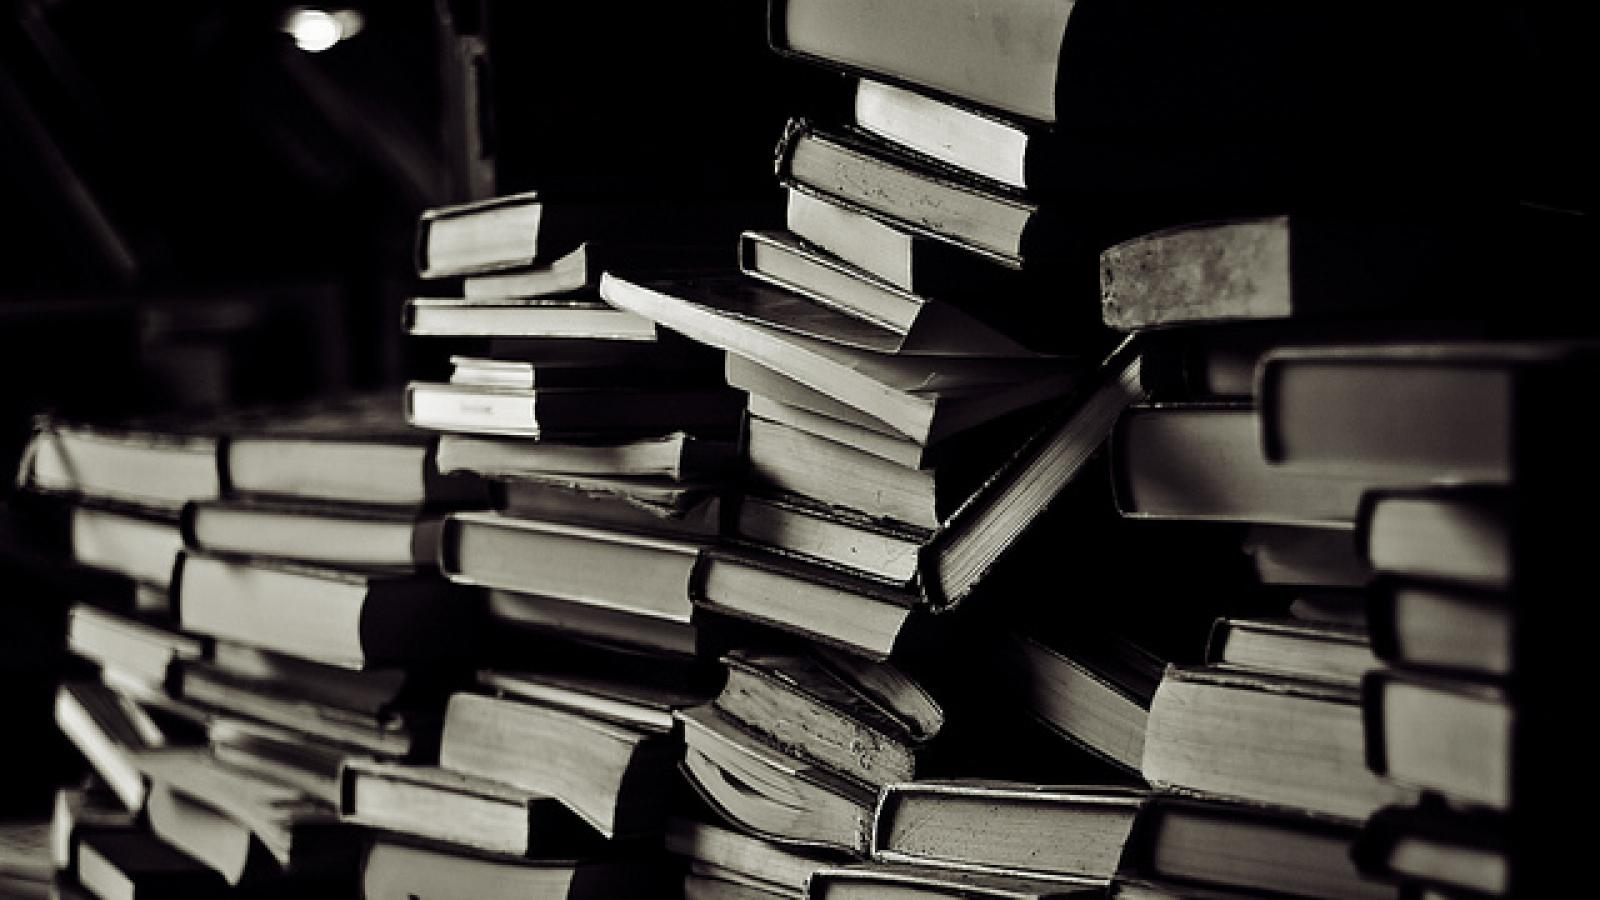 Black and white photo of stack of books